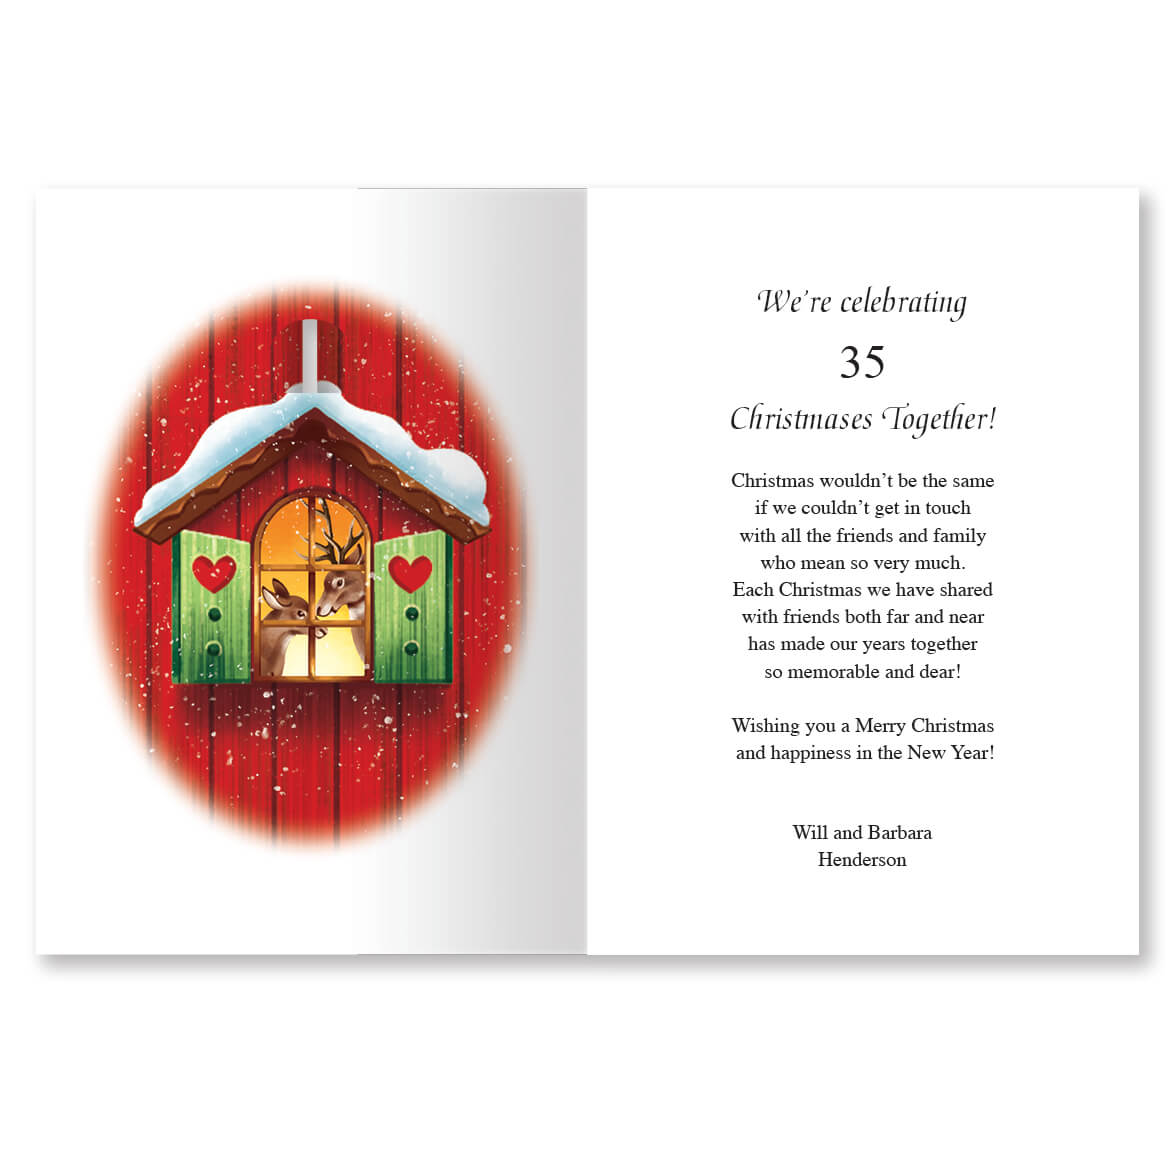 Personalized Our Years Together Christmas Card Set of 20-363921